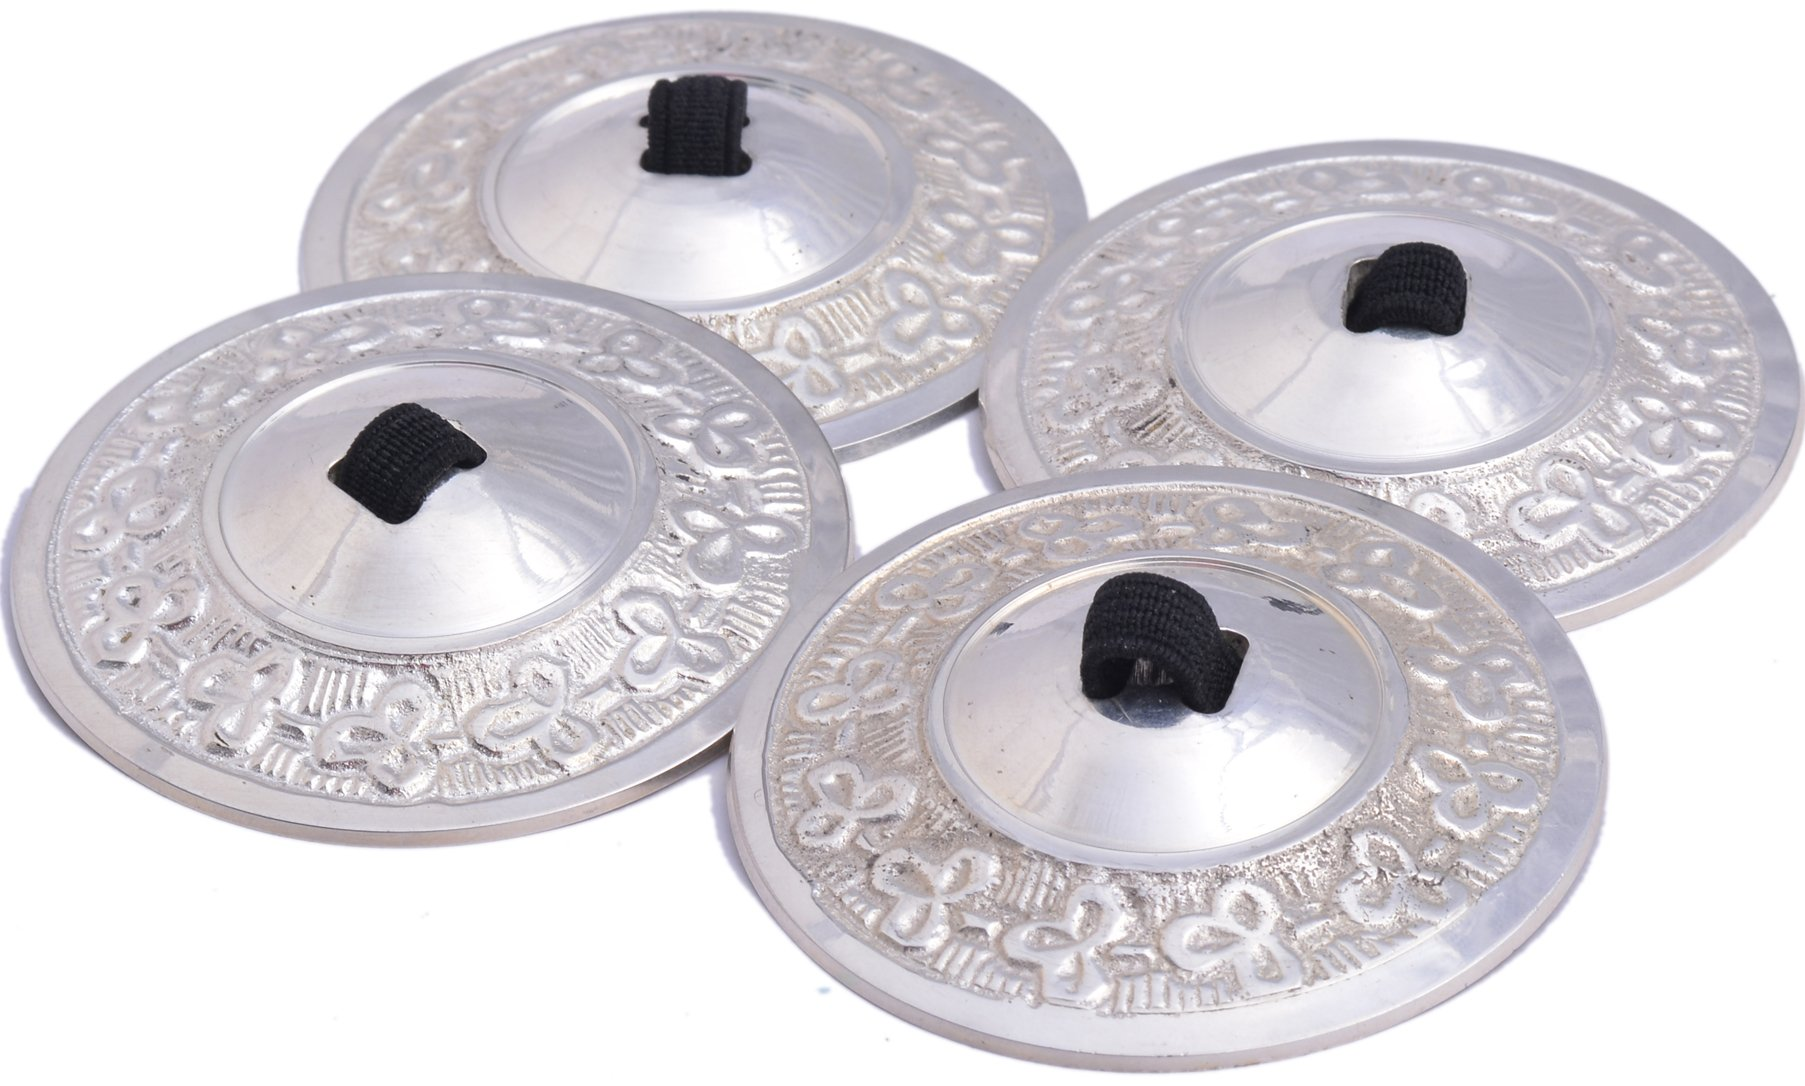 Wevez Women's 2 Pairs of Belly Dancing Finger Cymbal Zills, One Size, Silver by Wevez